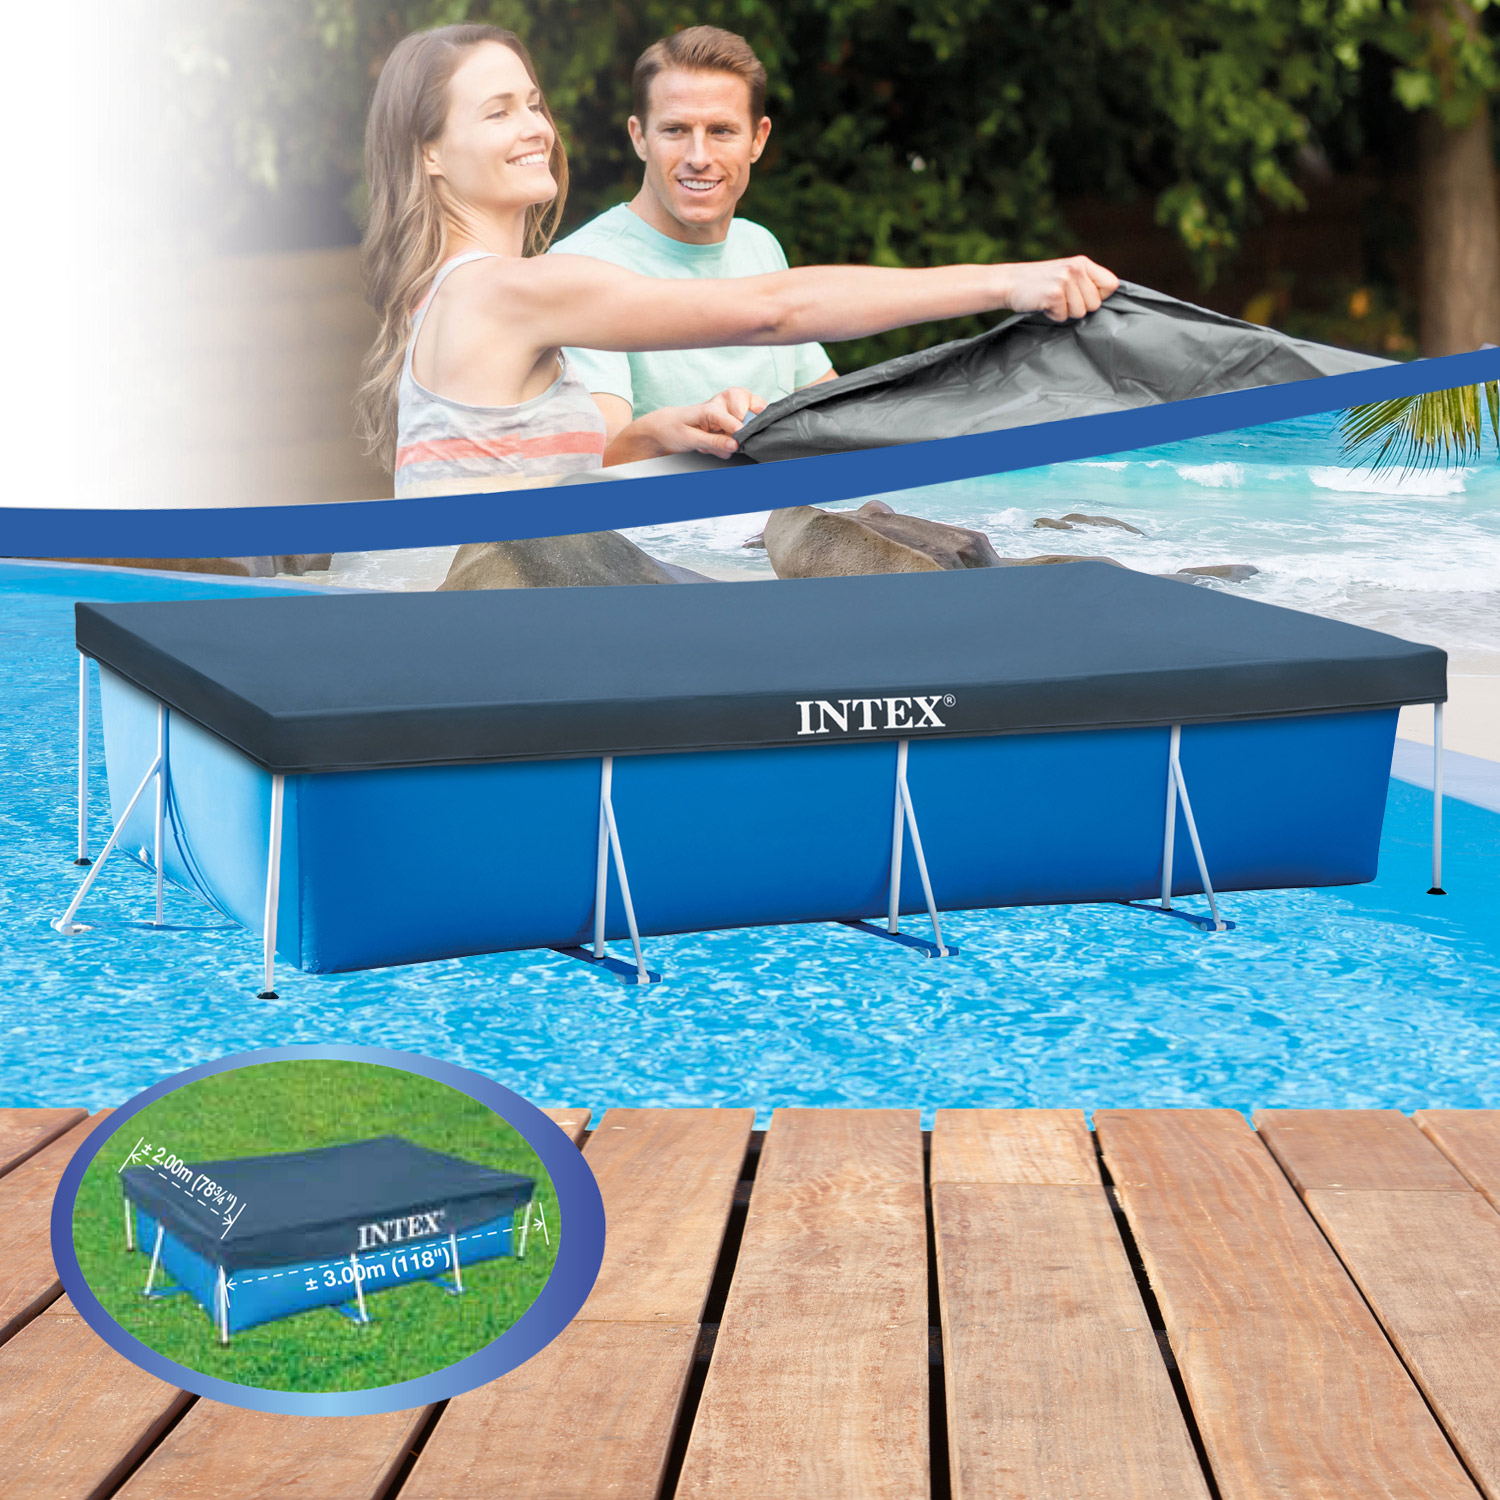 Abdeckplane Intex Pool Rechteckig Intex Abdeckplane Frame Pool Family 300 X 200 Cm